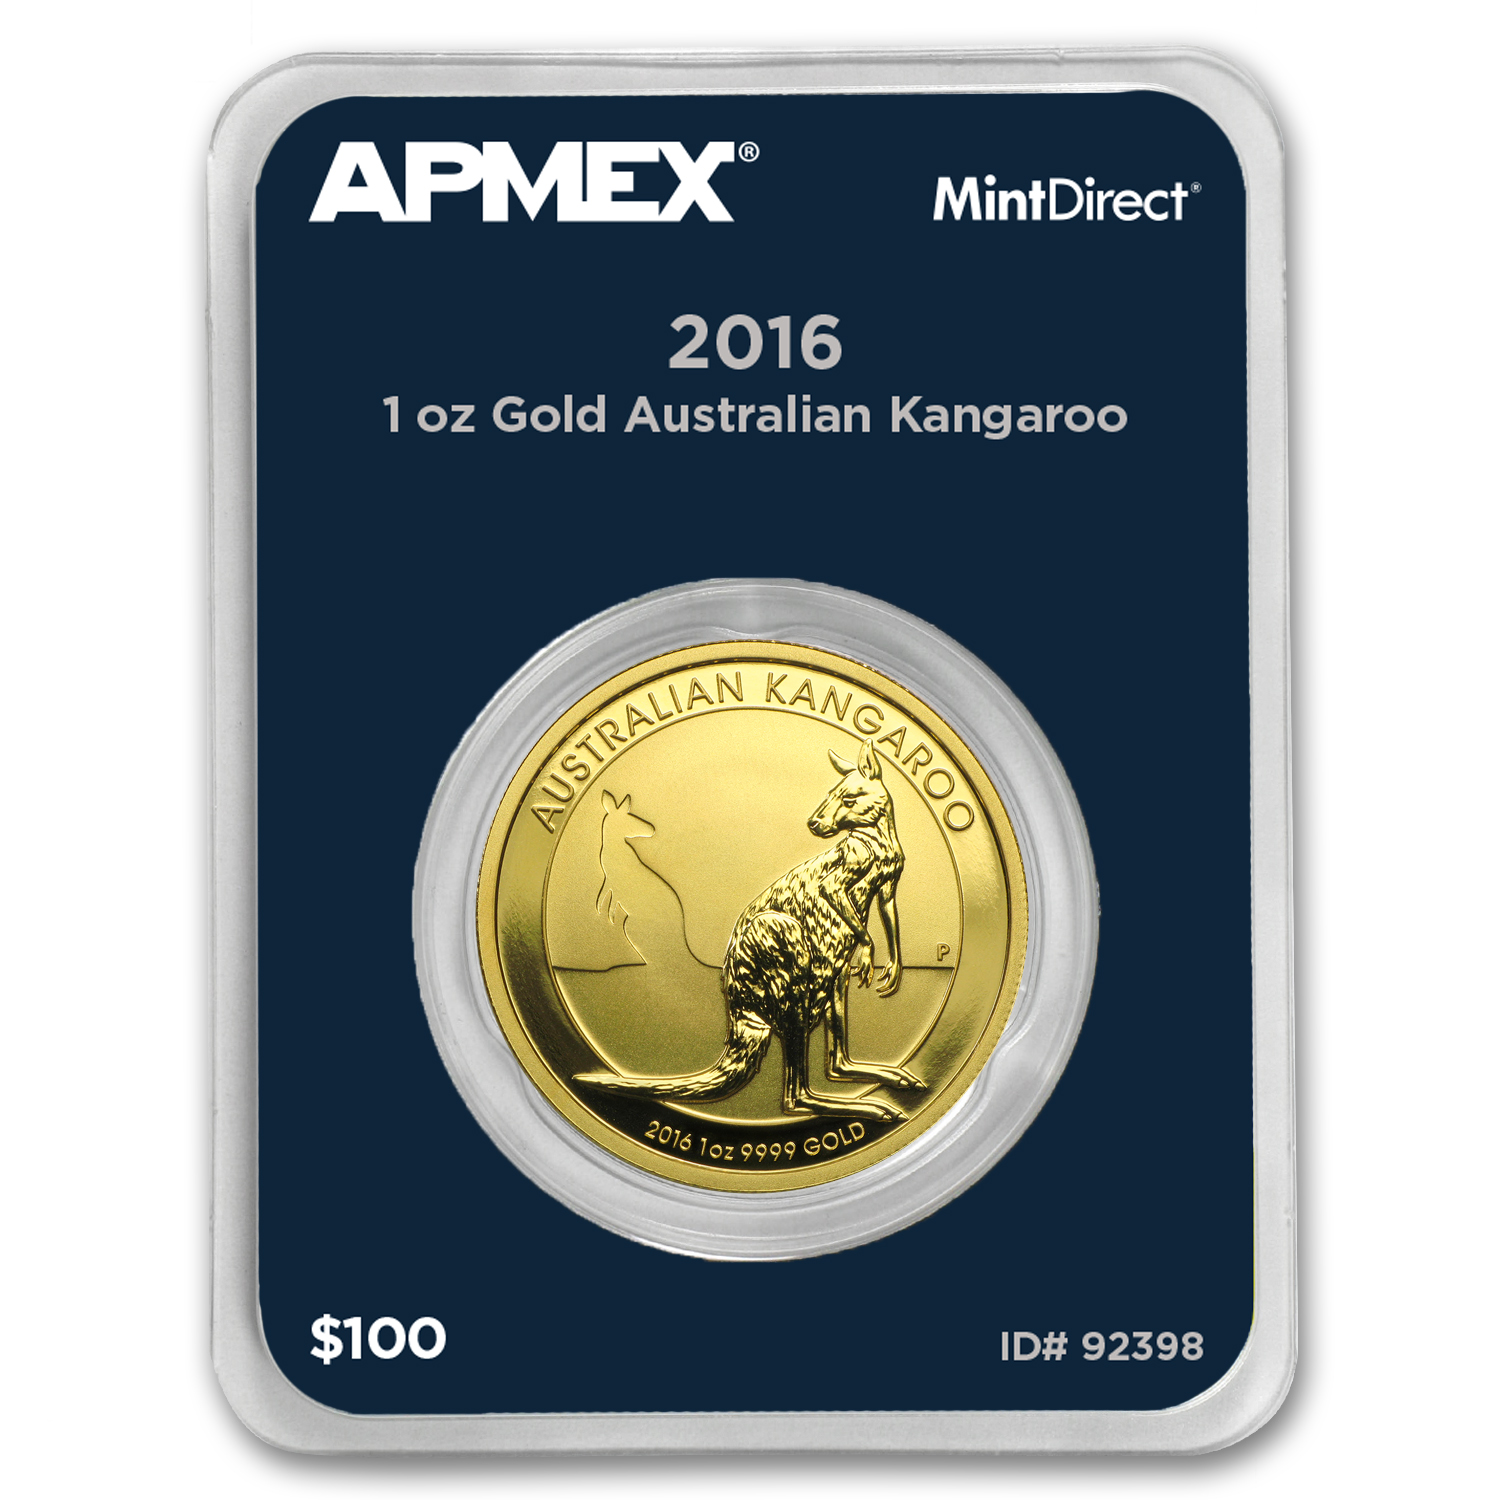 2016 Australia 1 oz Gold Kangaroo (MintDirect® Single)